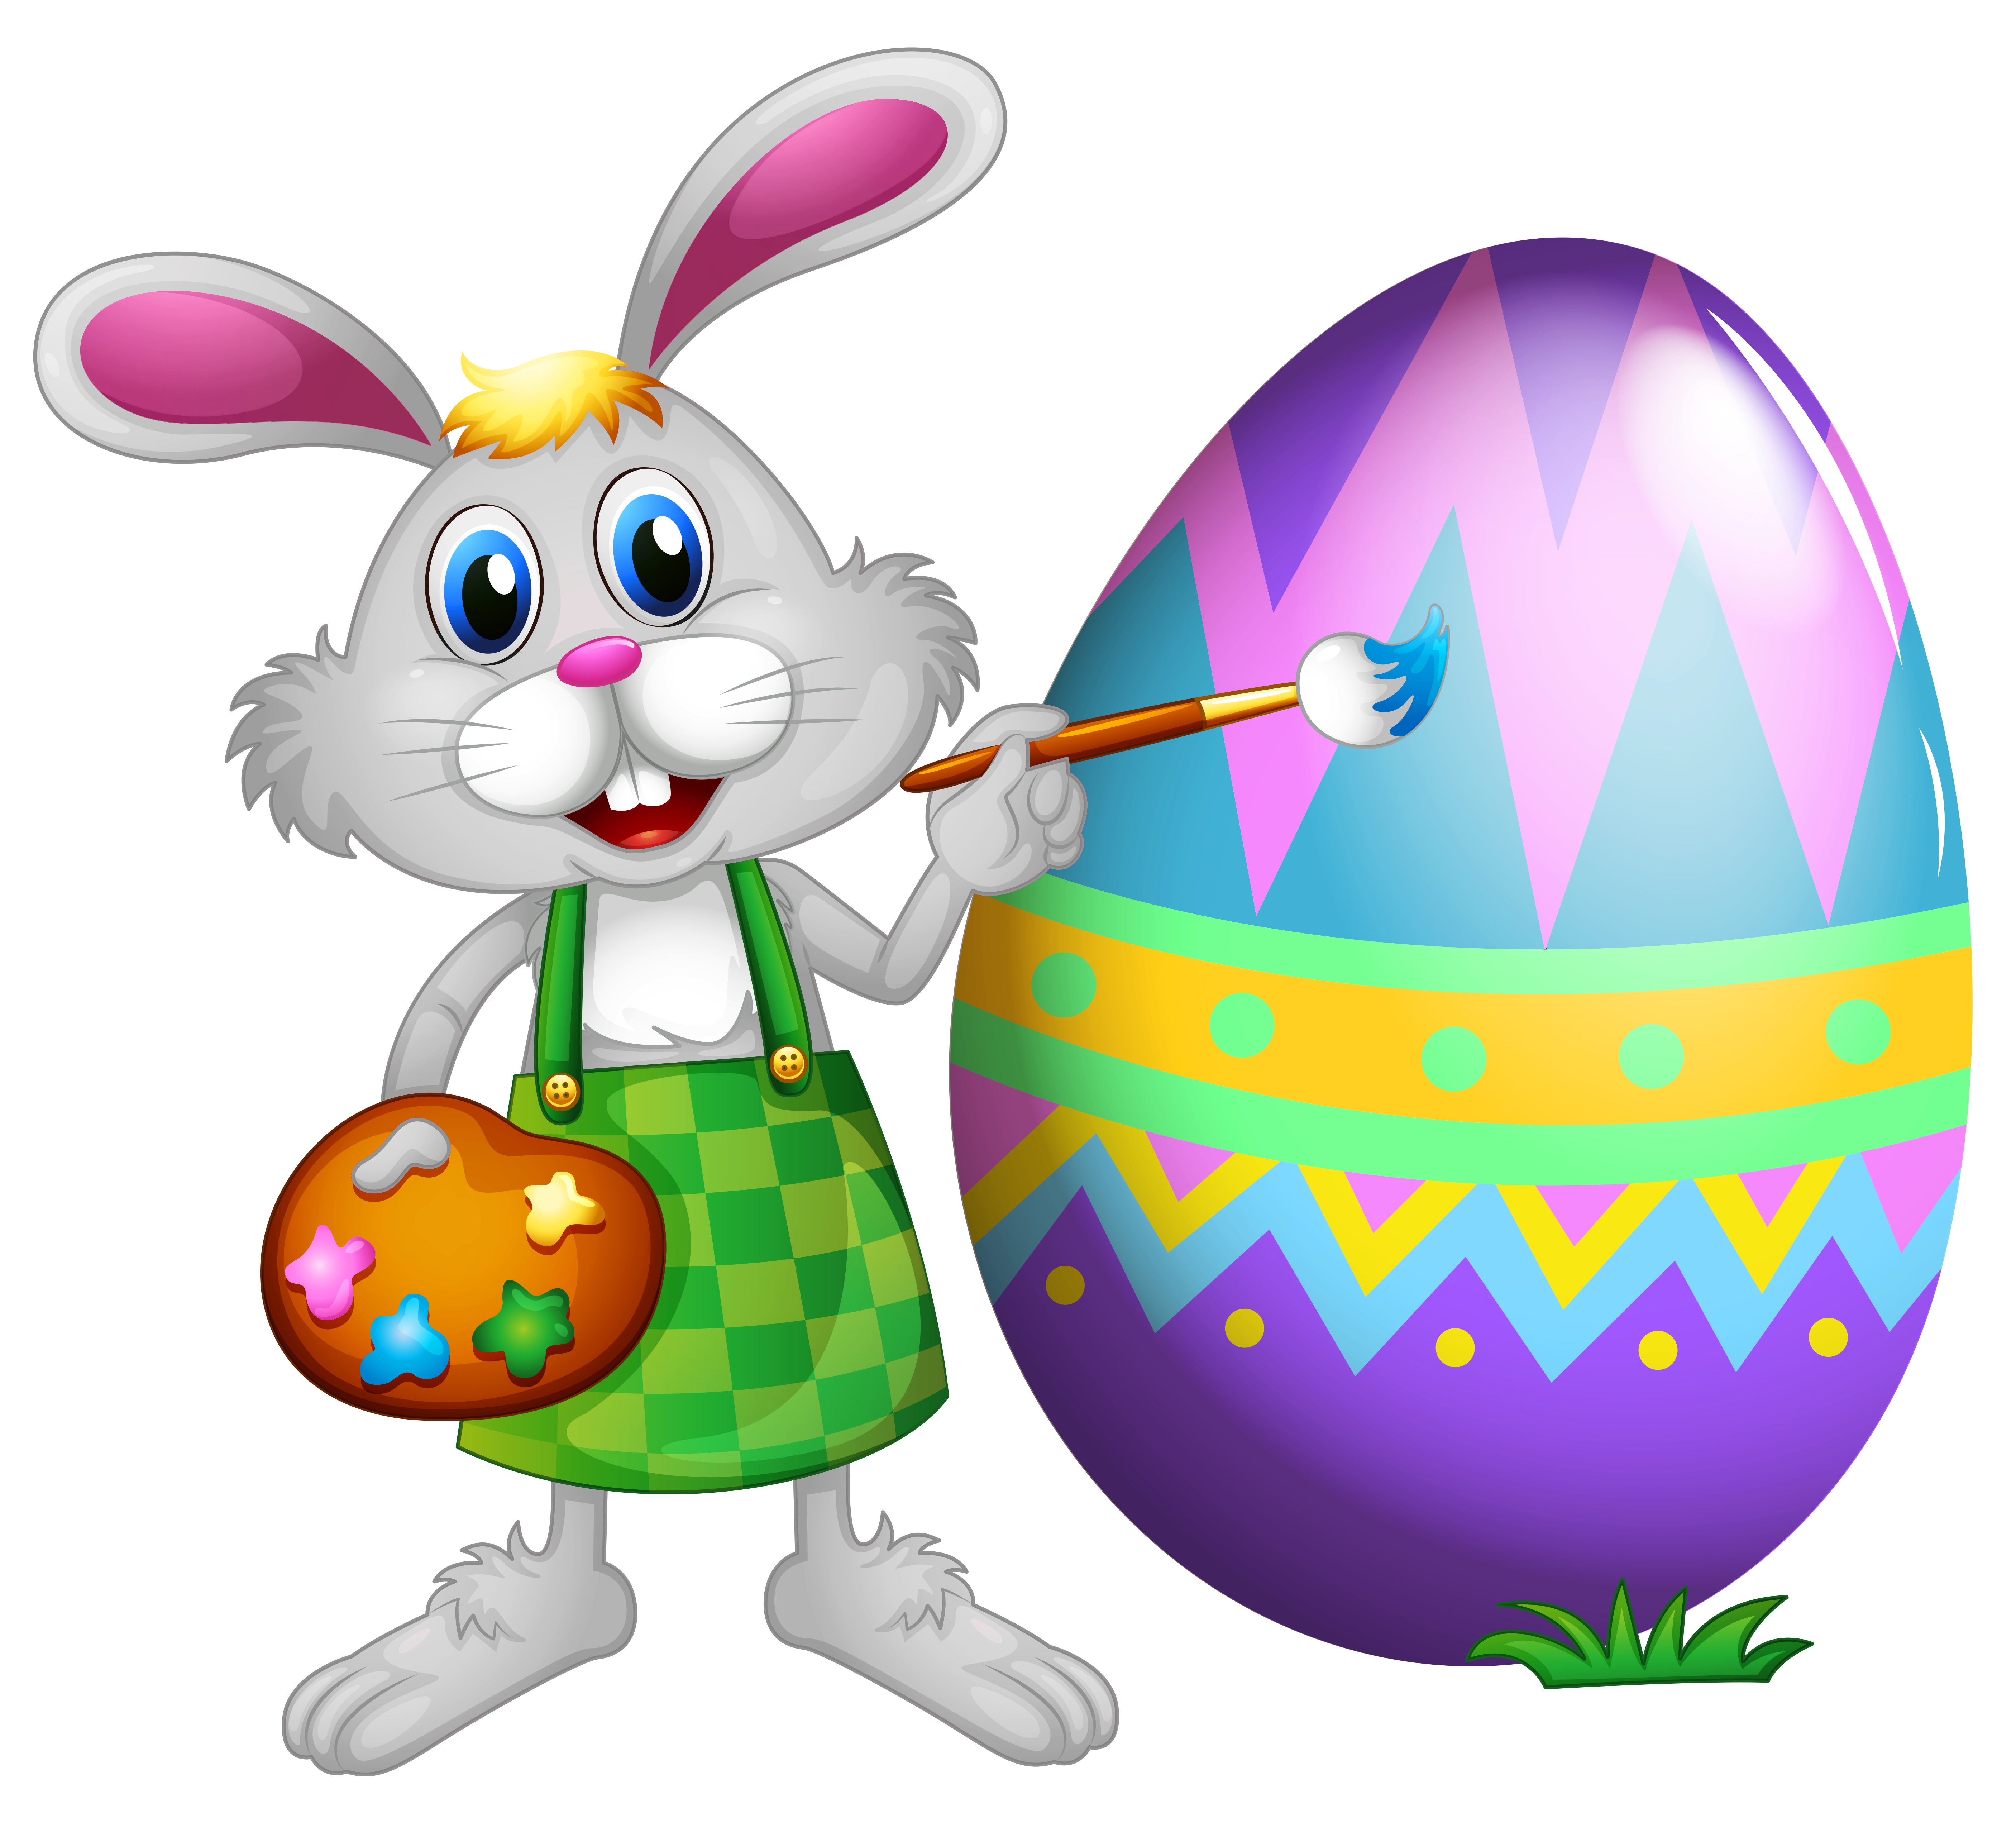 Easter bunny clip art png. And colored egg clipart